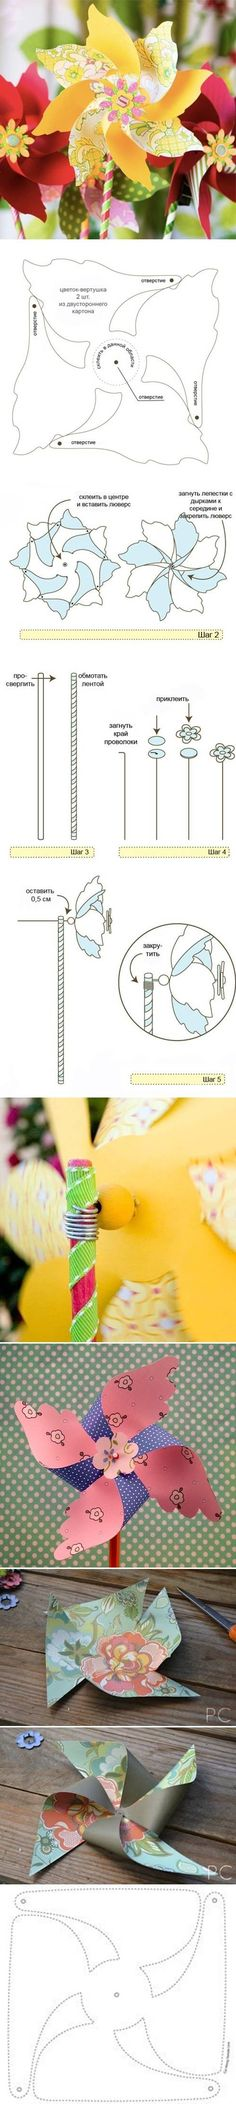 Diy Paper Pinwheels Templates Ideas For 2019 Origami Paper, Diy Paper, Paper Art, Paper Crafts, Windmill Diy, Paper Windmill, Kirigami, Diy And Crafts, Crafts For Kids